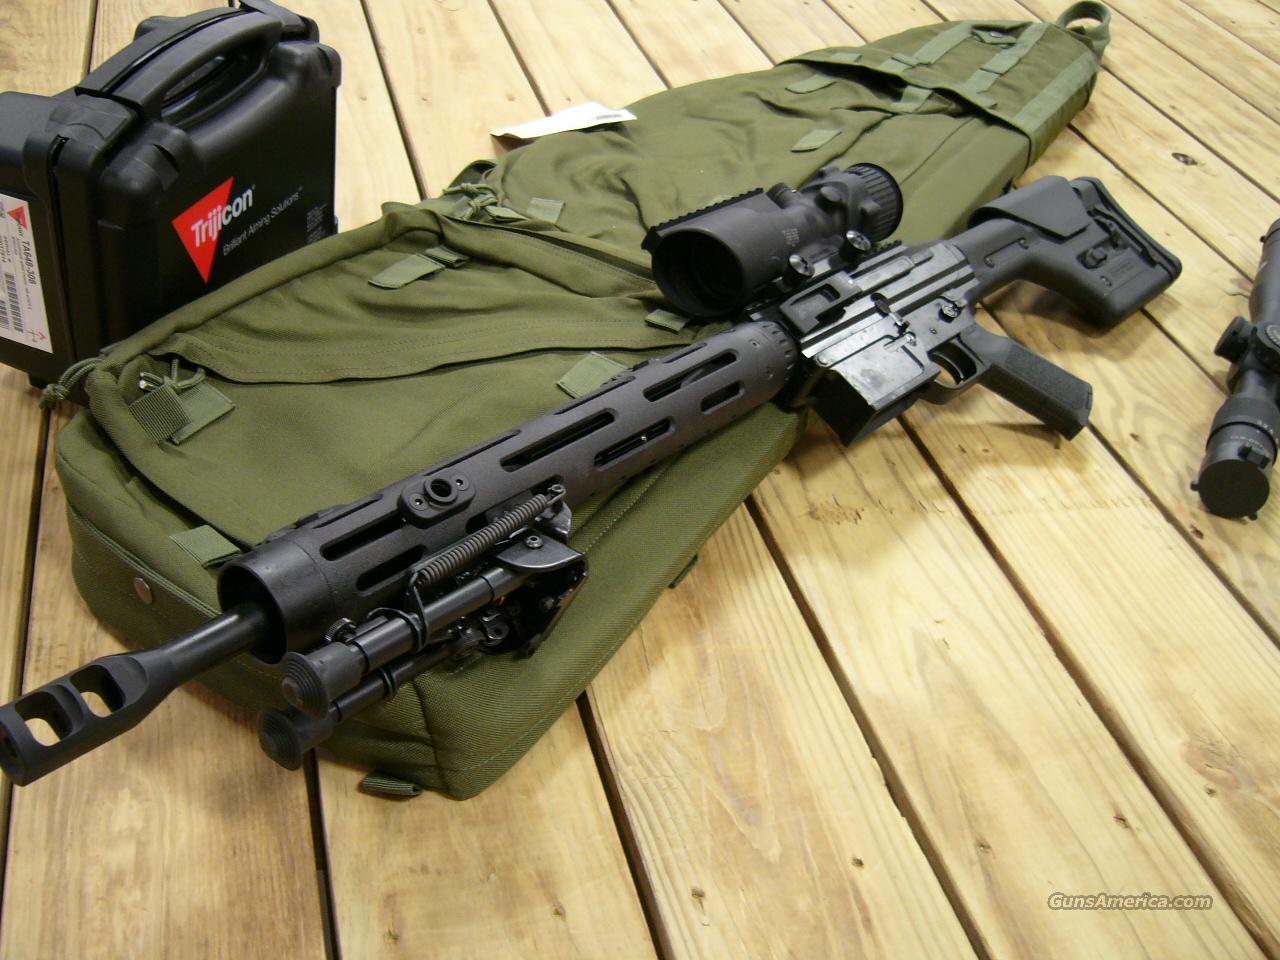 JP RIFLES SNIPER/MATCH .308 SIDE CHARGER W/ TRIJICON 6X ACOG IN STOCK!  Guns > Rifles > Heckler & Koch Rifles > Tactical